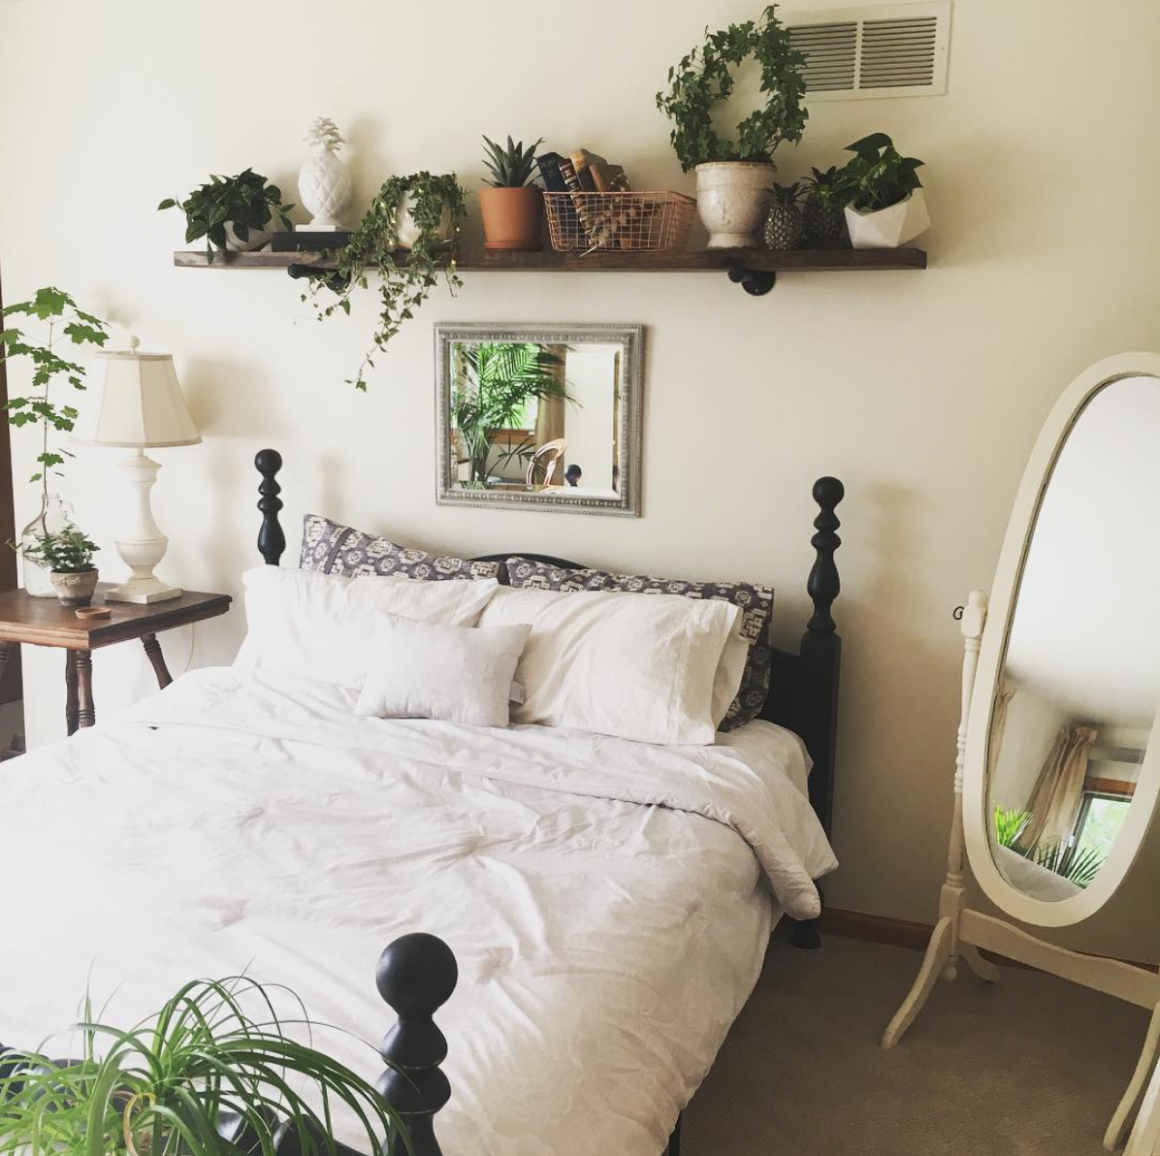 White bedroom with plants (With images) | Bedroom inspirations ..